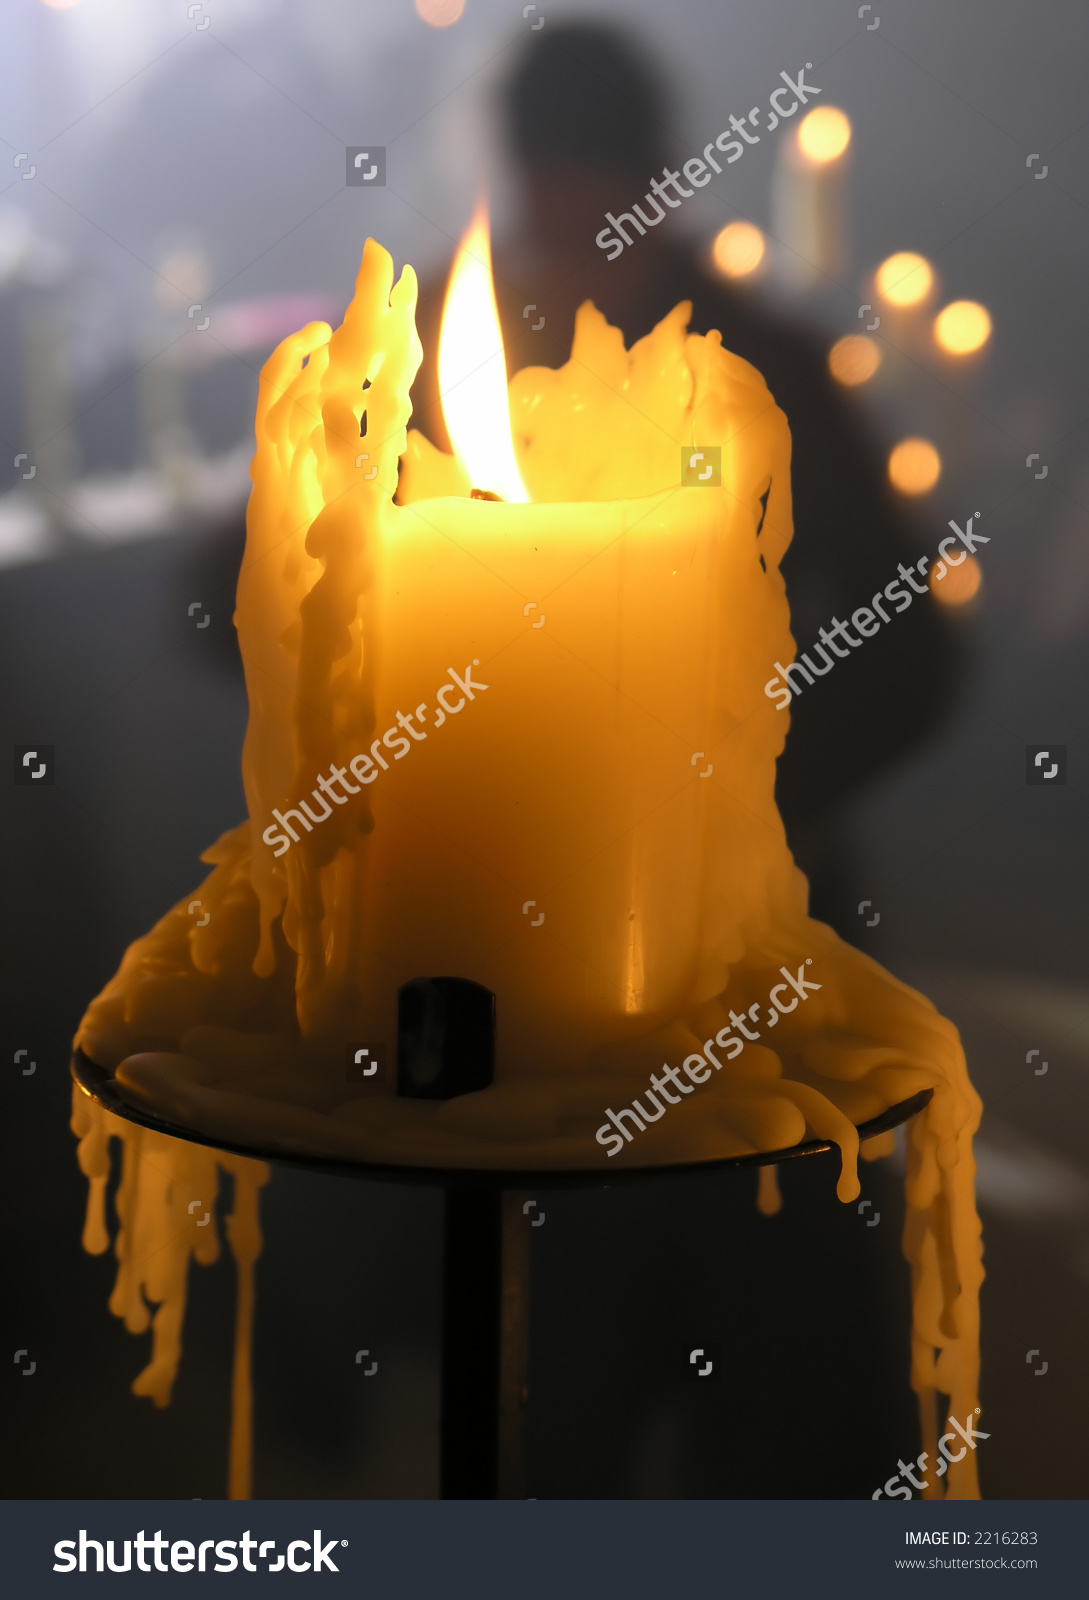 Nice wallpapers Melting Candle 1089x1600px